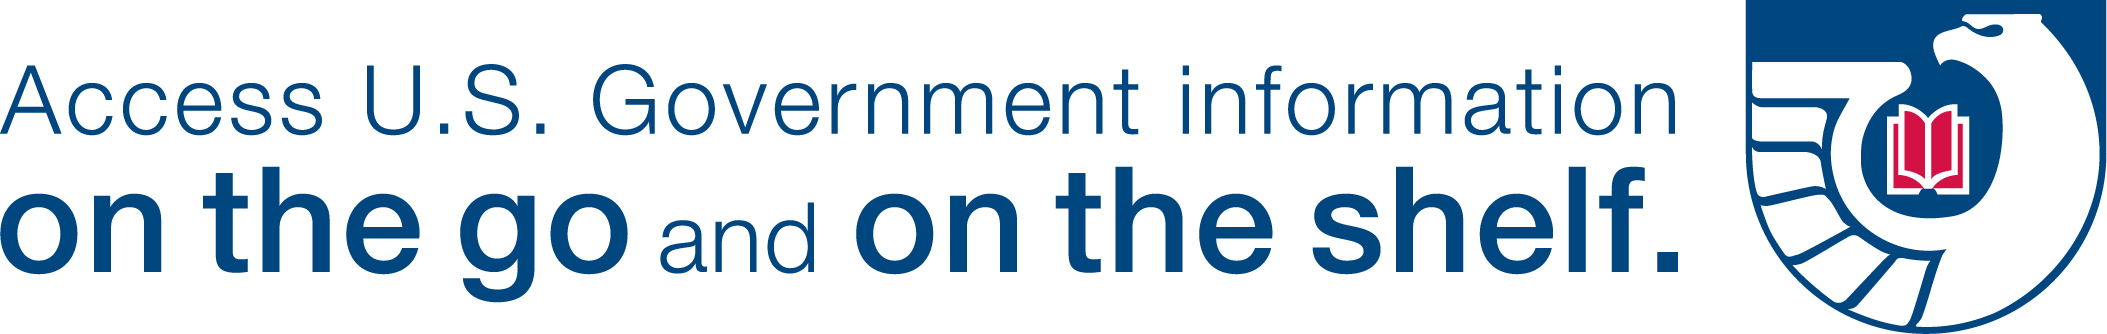 "logo for the FDLP saying ""access U.S. Government Information on the go and on the shelf"""